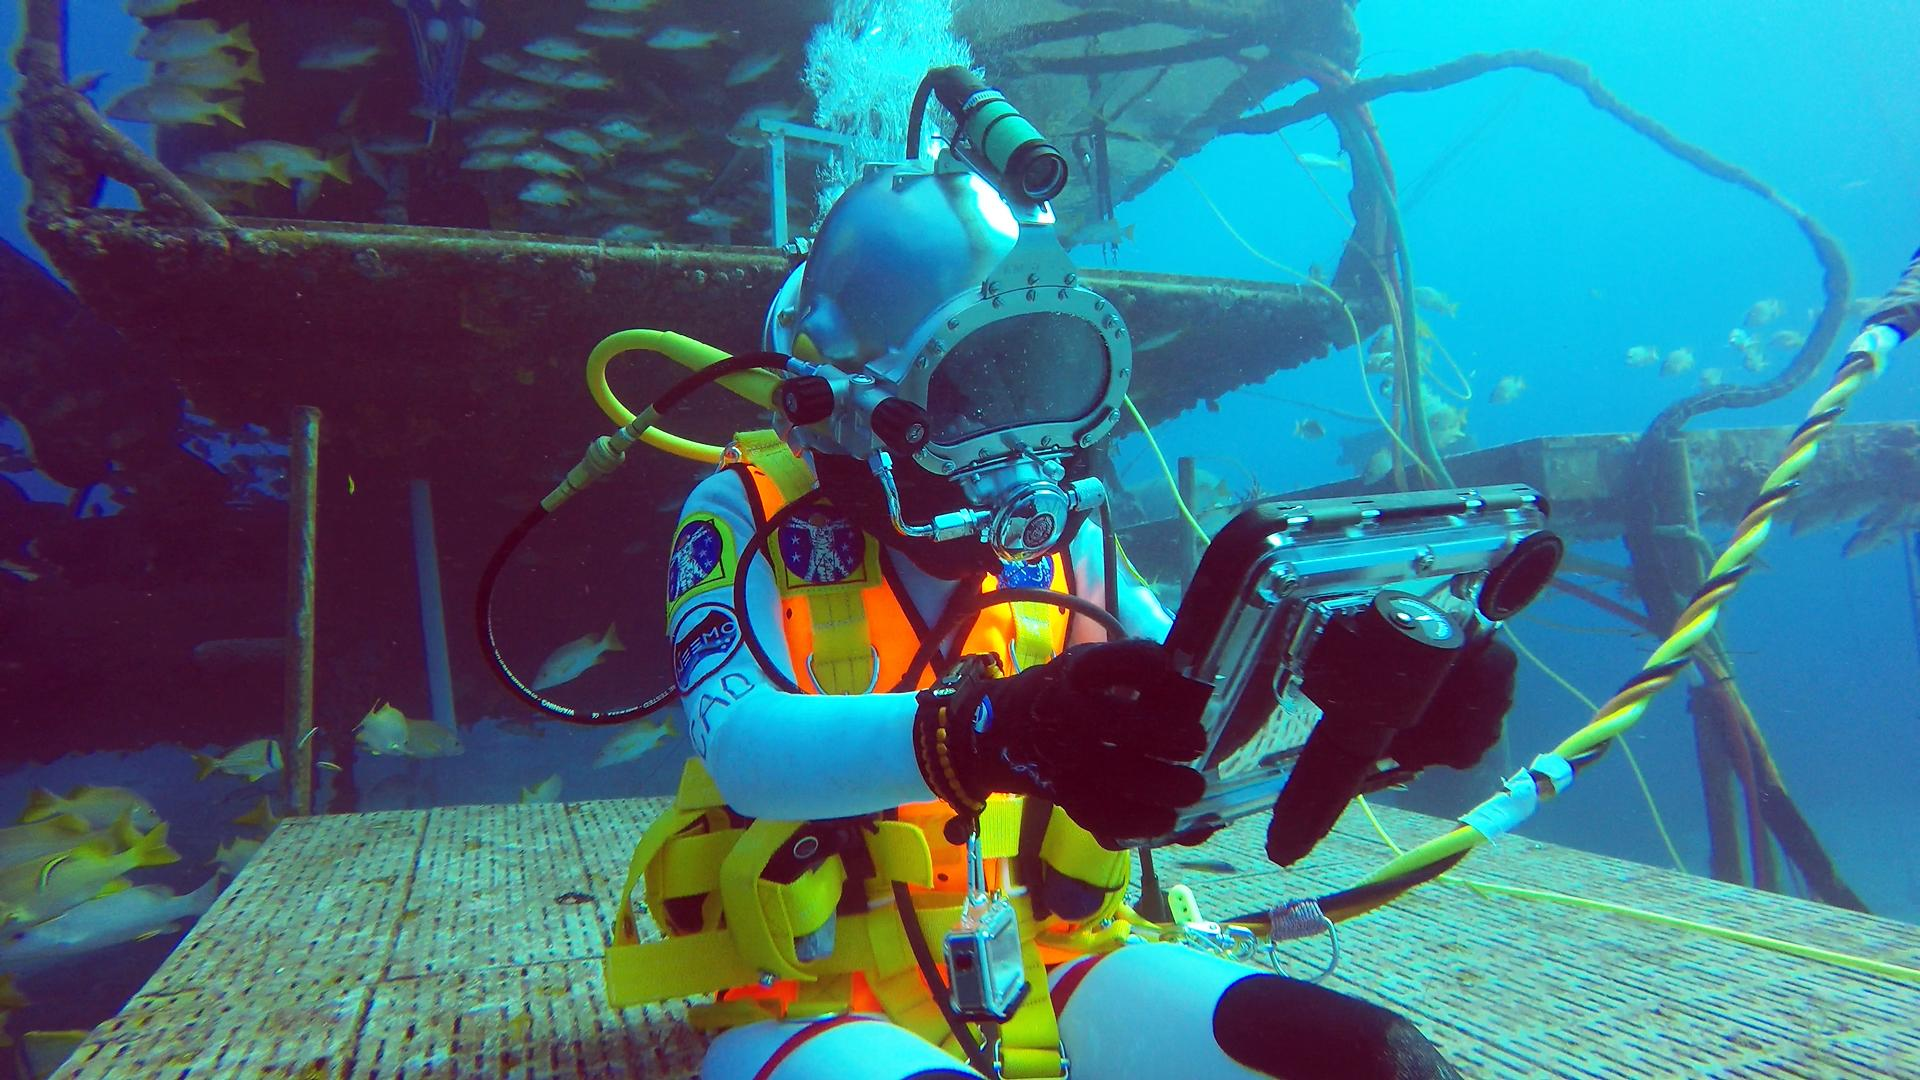 NASA Scientists and Astronauts Practice for Space Missions on the Seafloor